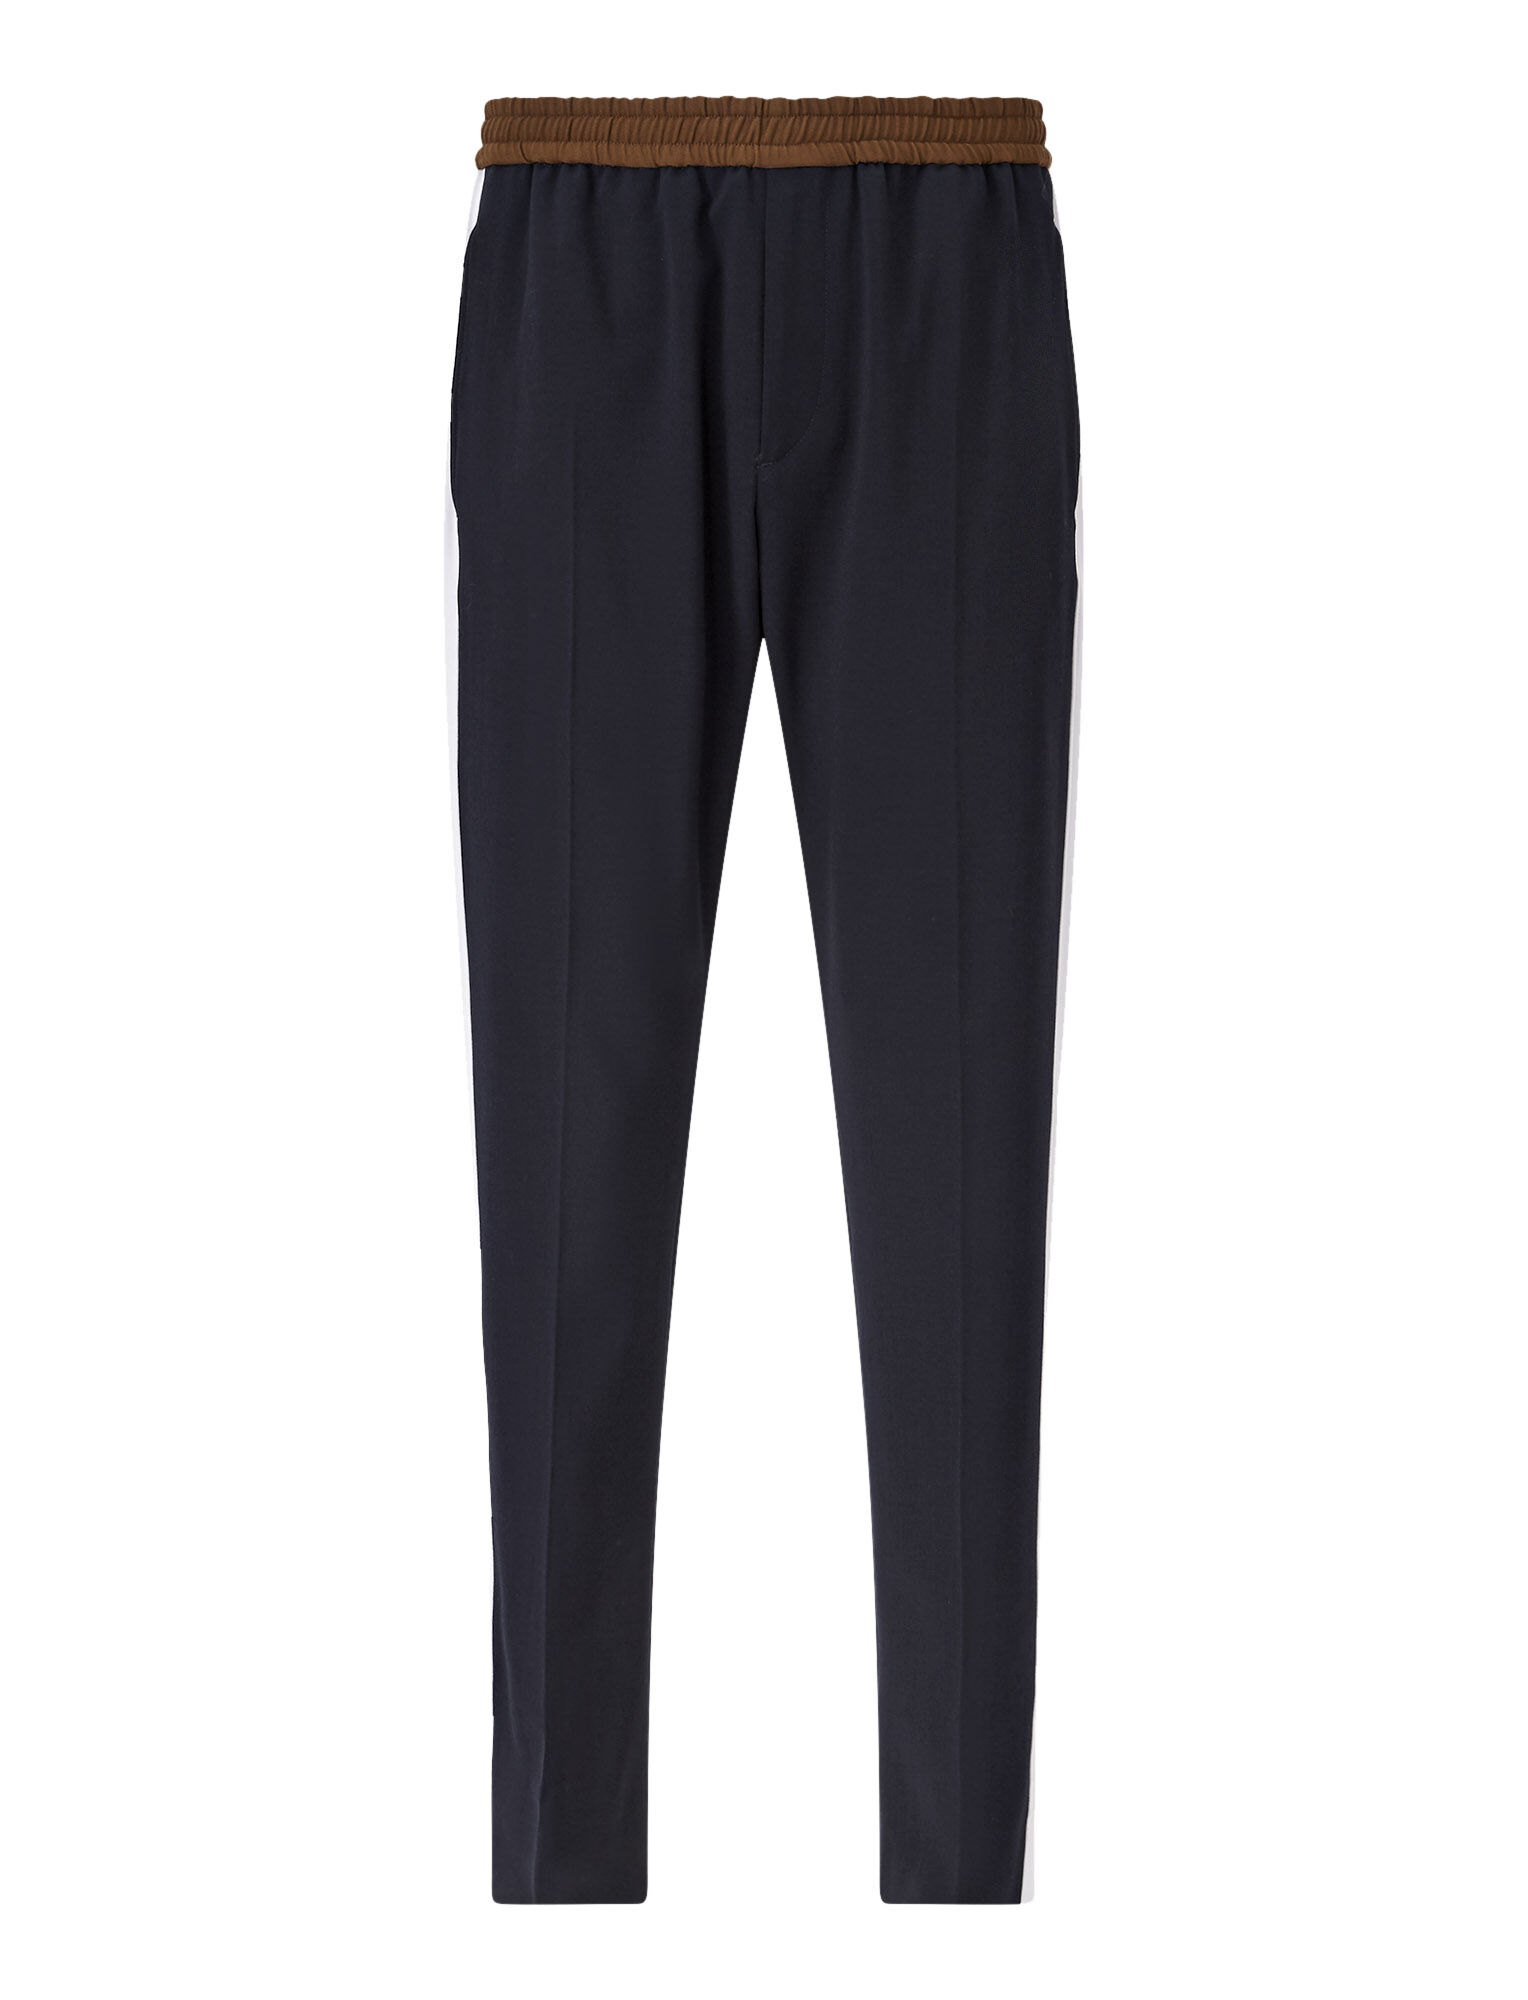 Joseph, Eza Techno Wool Stretch Trousers, in NAVY